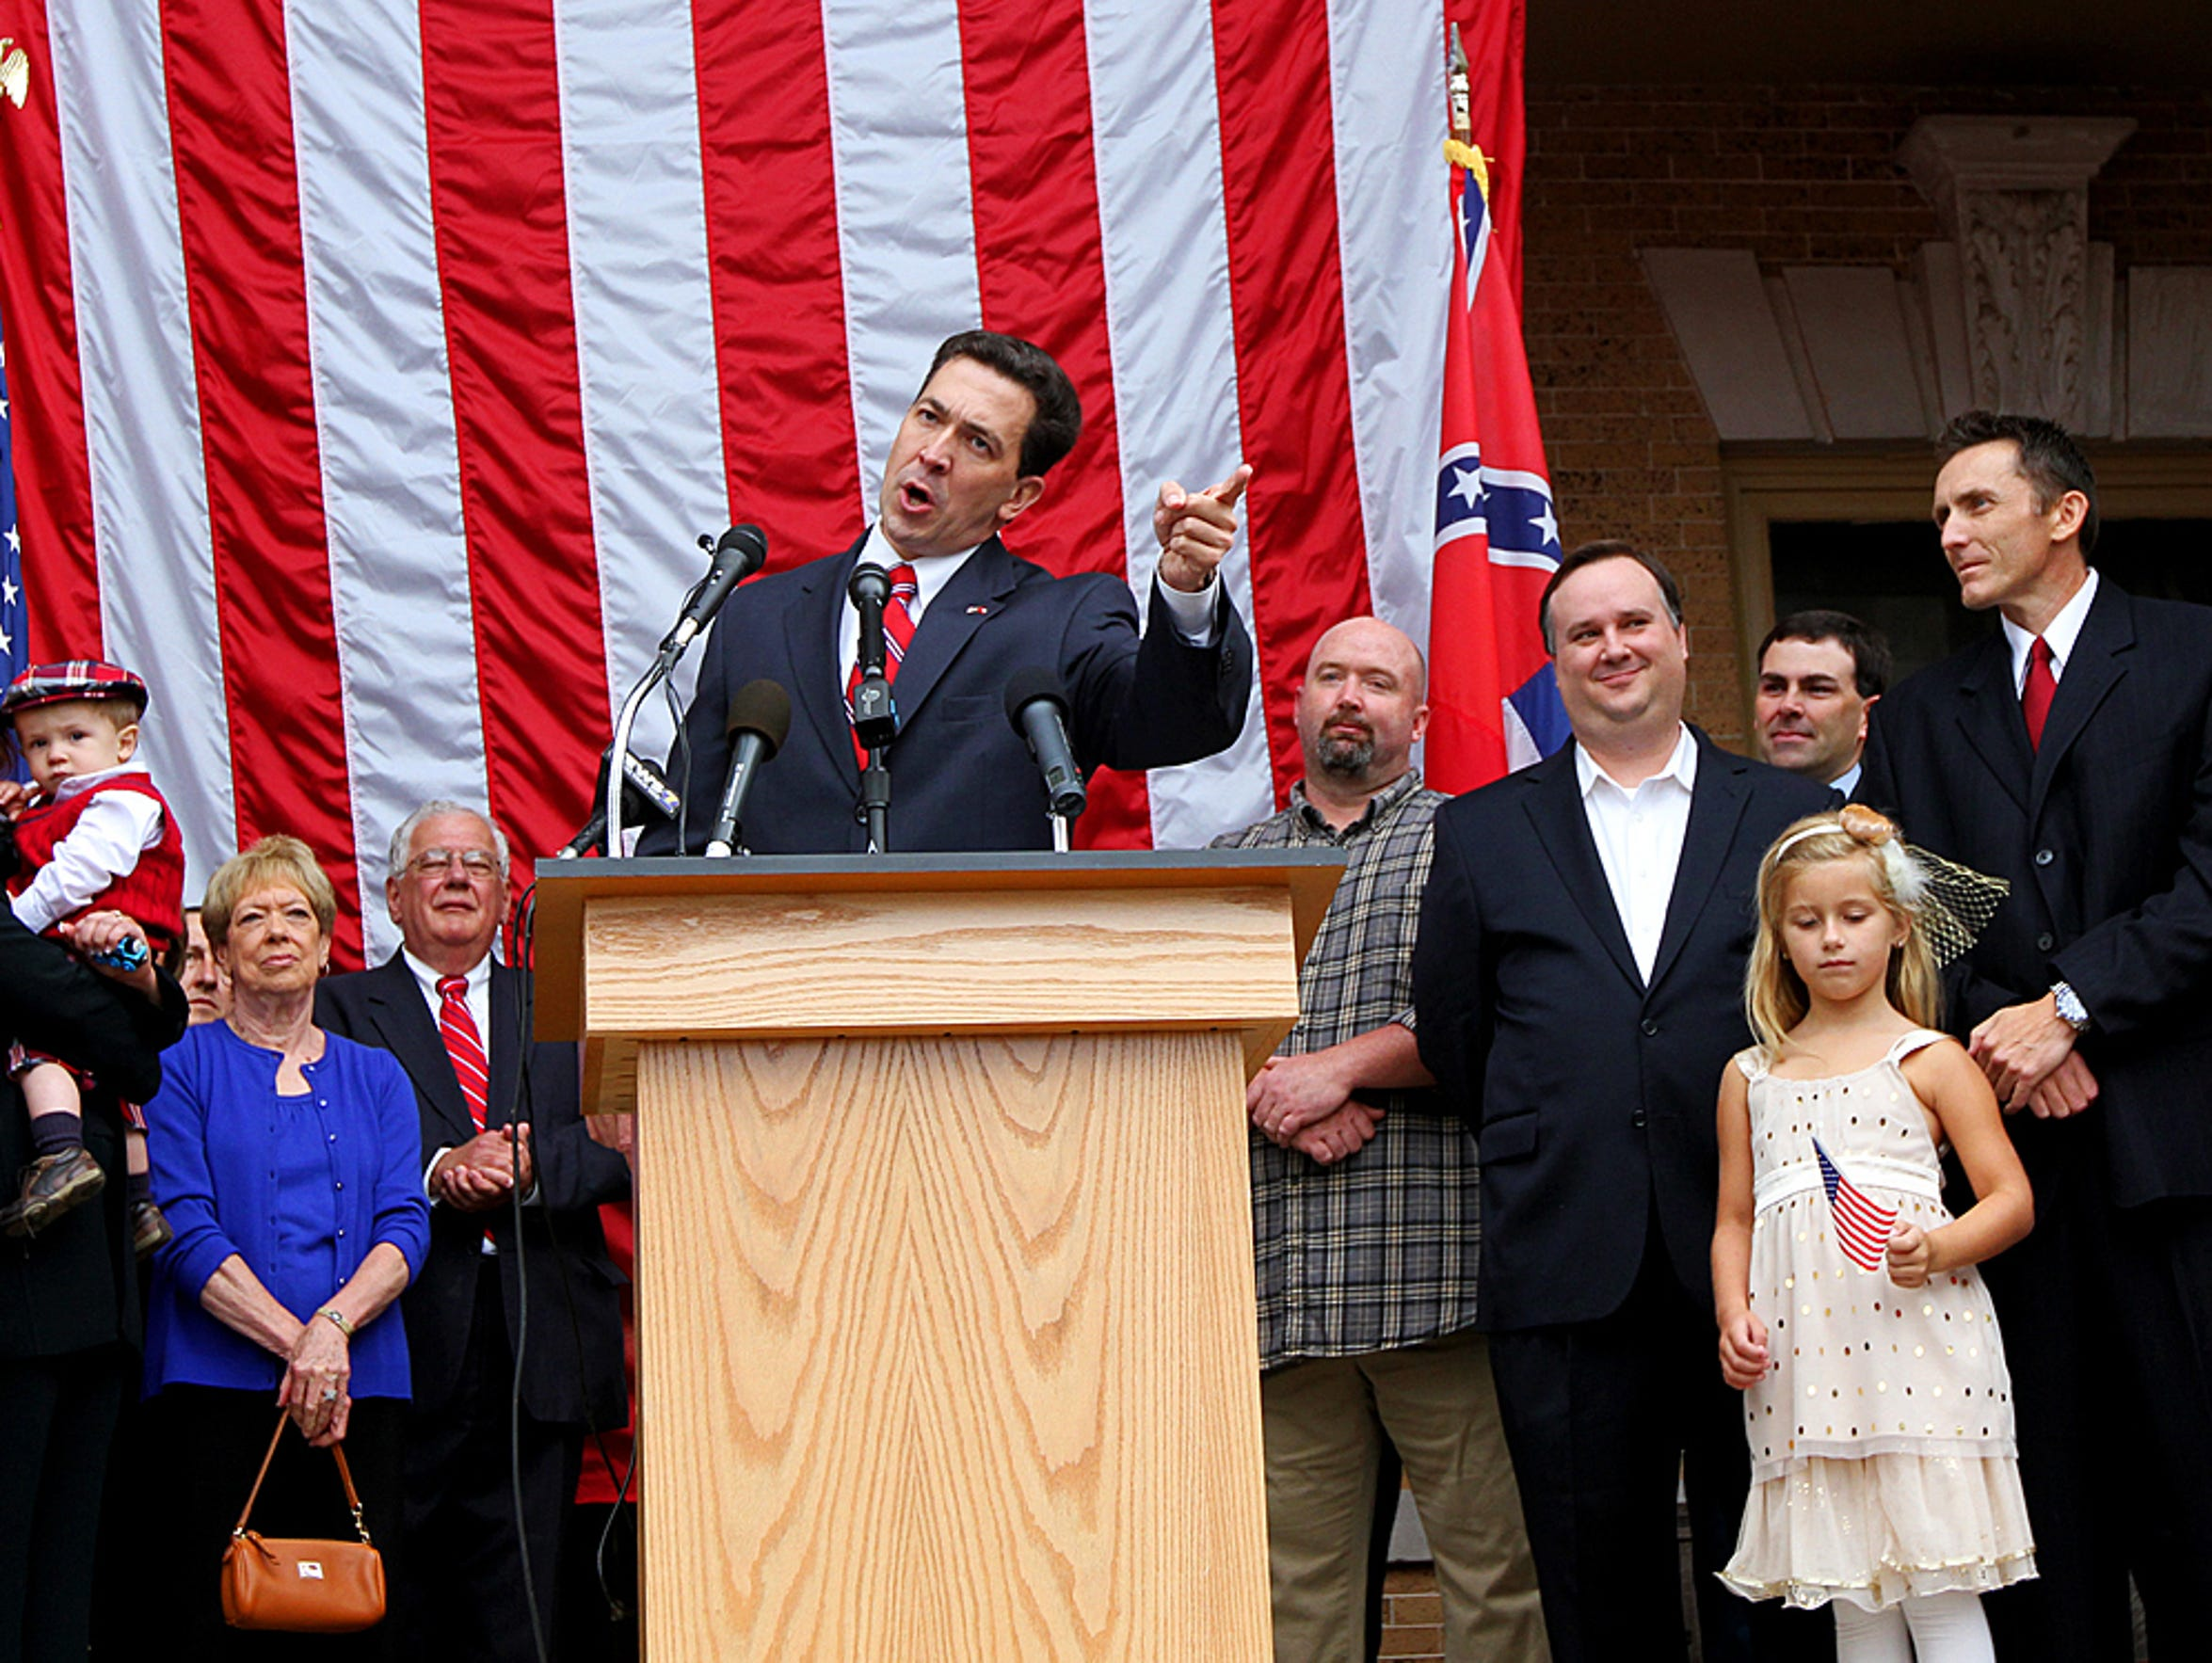 Chris McDaniel, State Senator for the 42nd District,